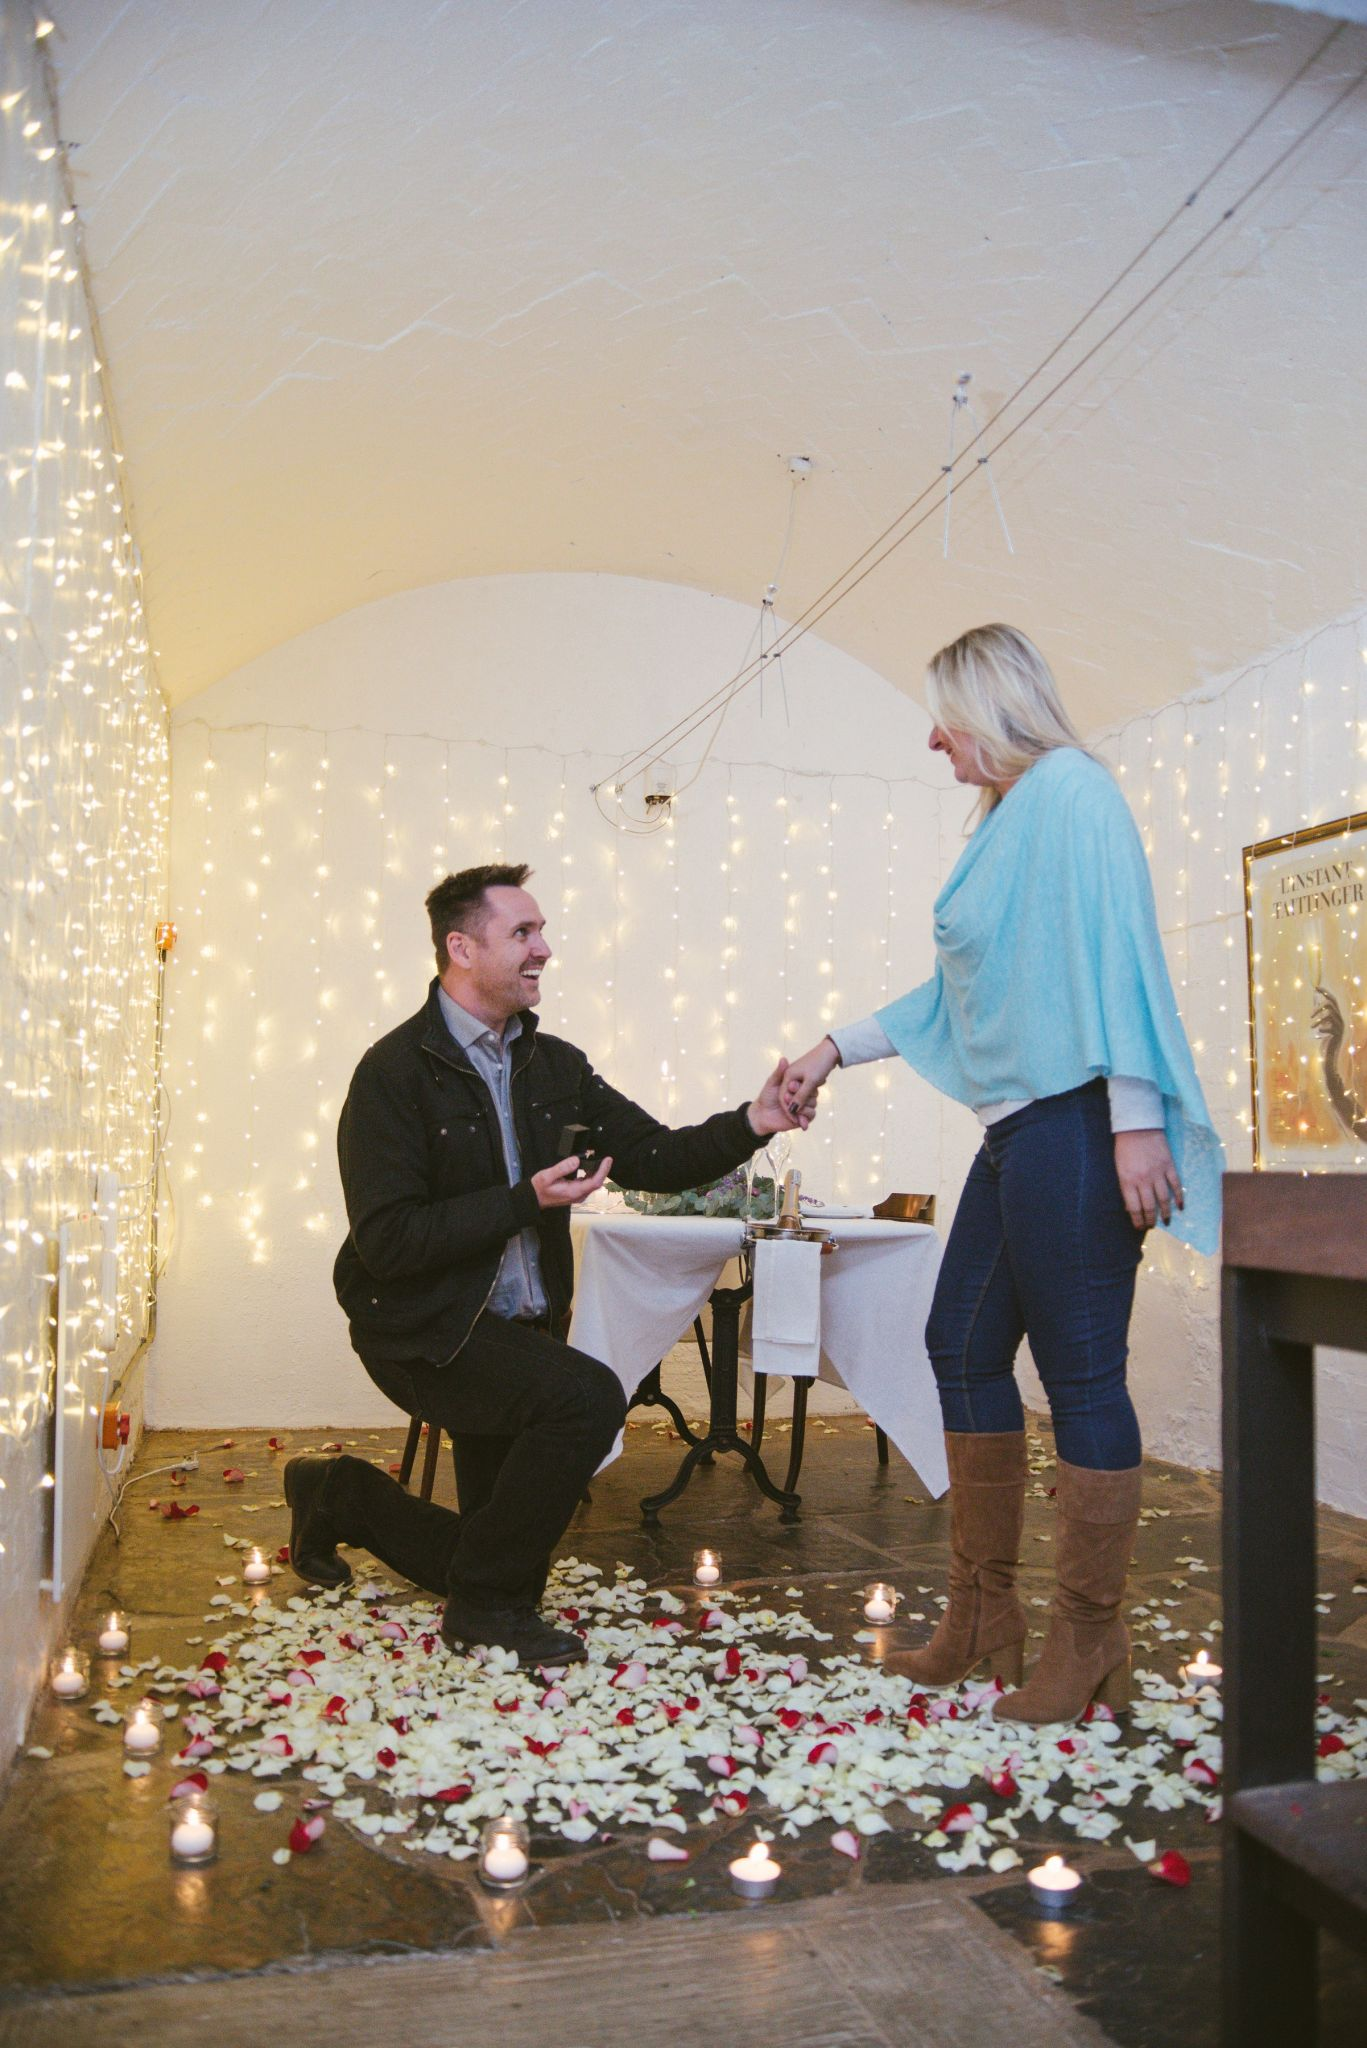 Deon and Nolene wine cellar proposal